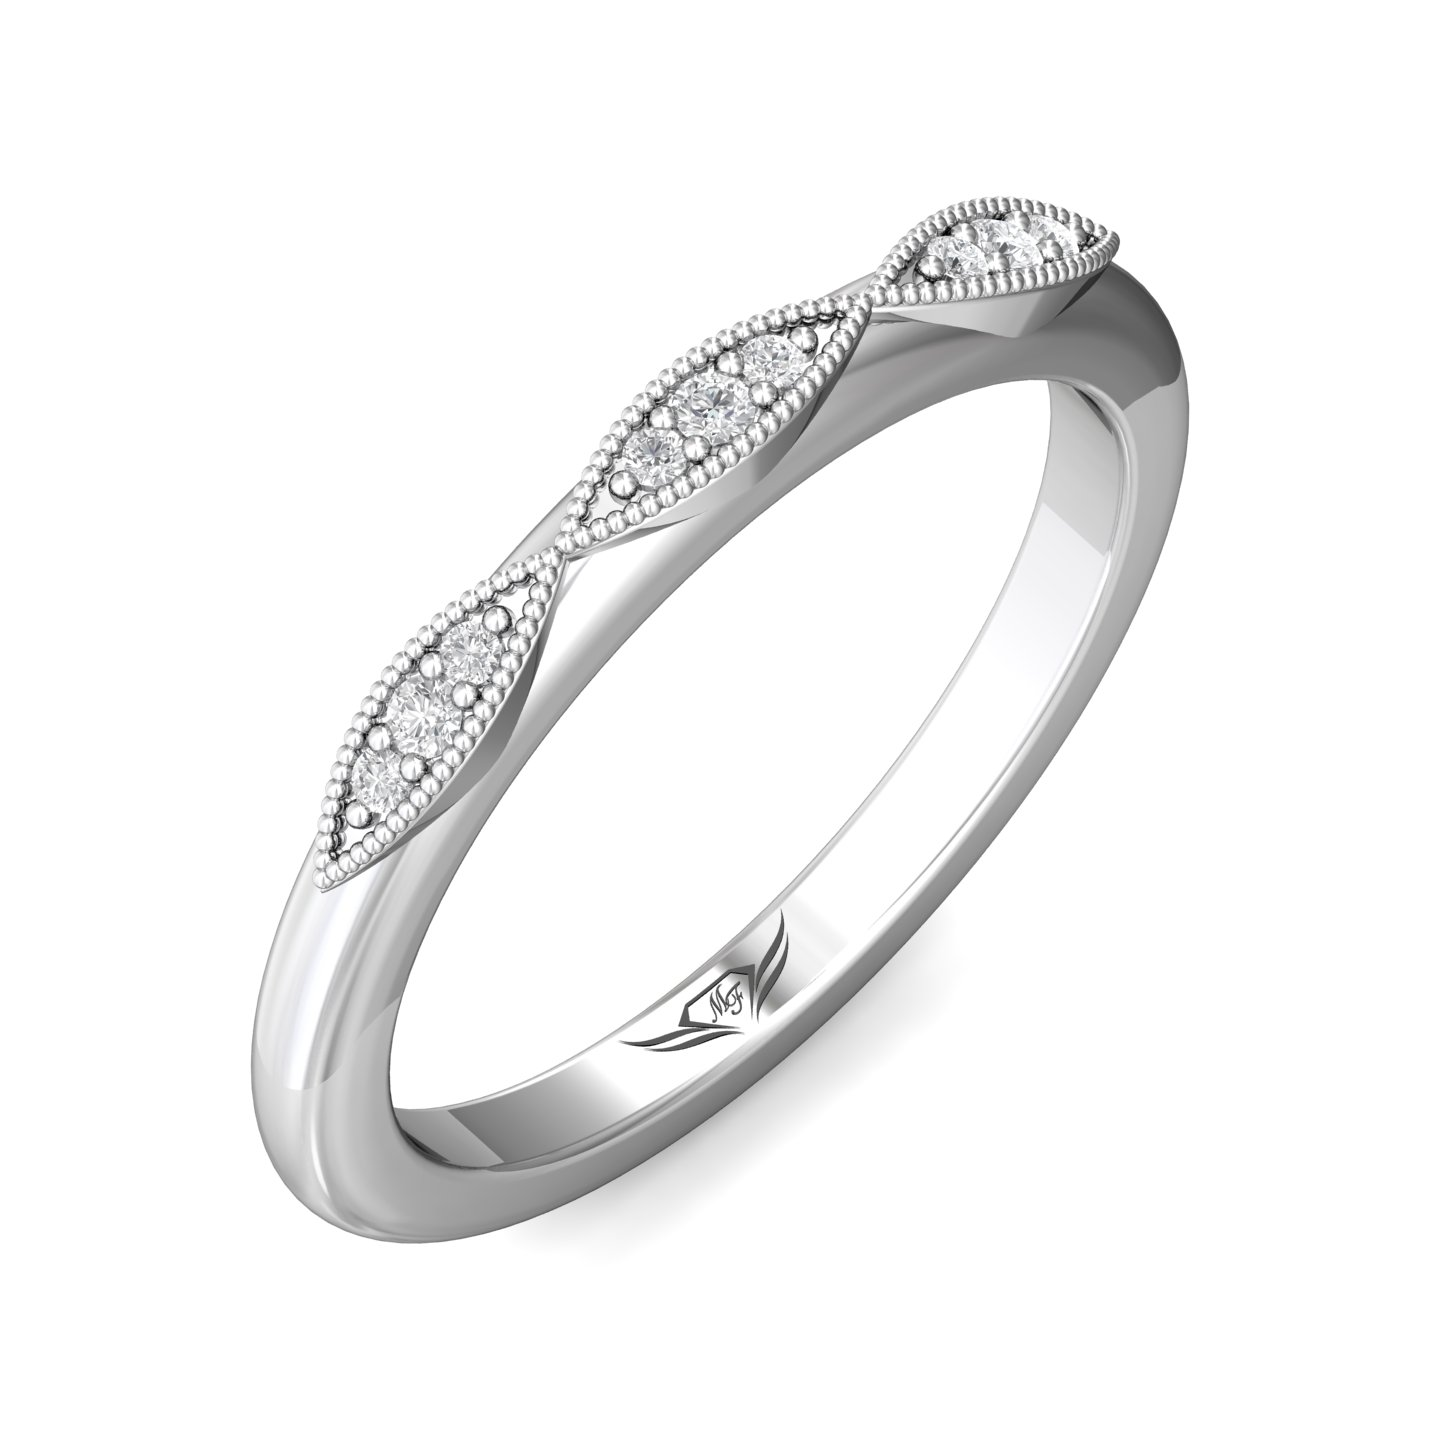 14K White Gold FlyerFit Micropave Bead Set Wedding Band Image 5 Grogan Jewelers Florence, AL